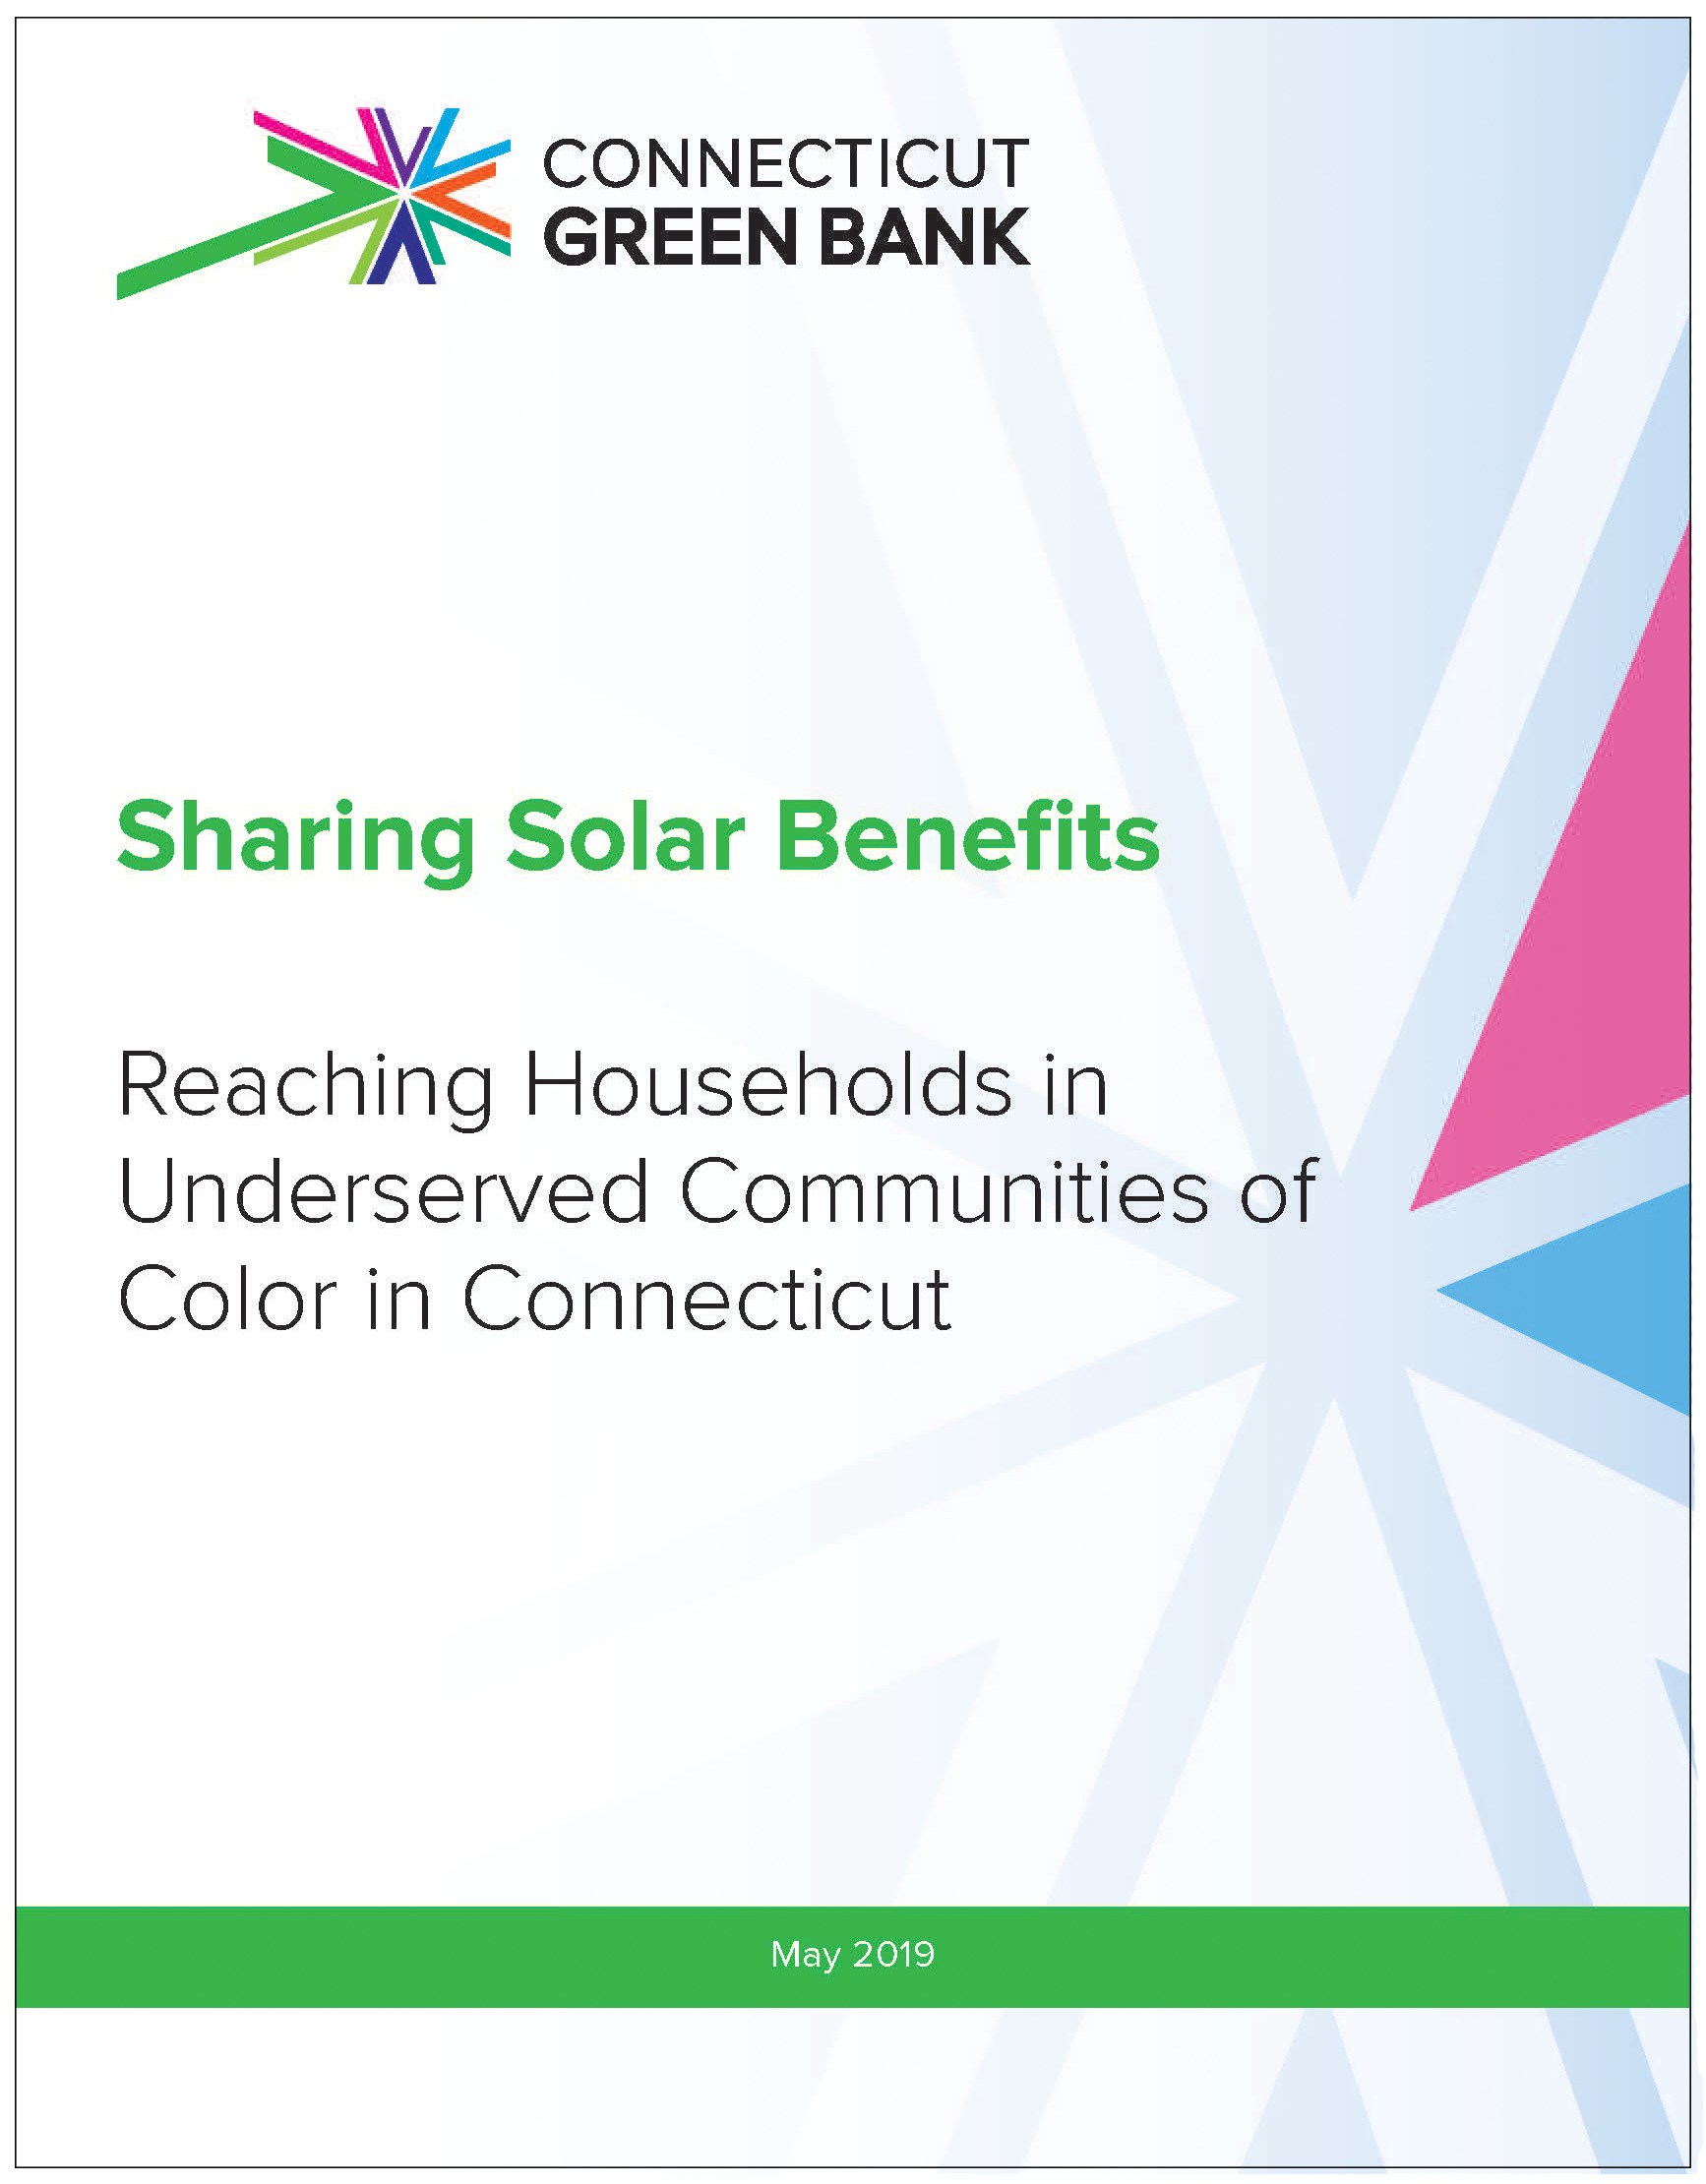 Connecticut Green Bank Accelerates Adoption of Solar Energy in